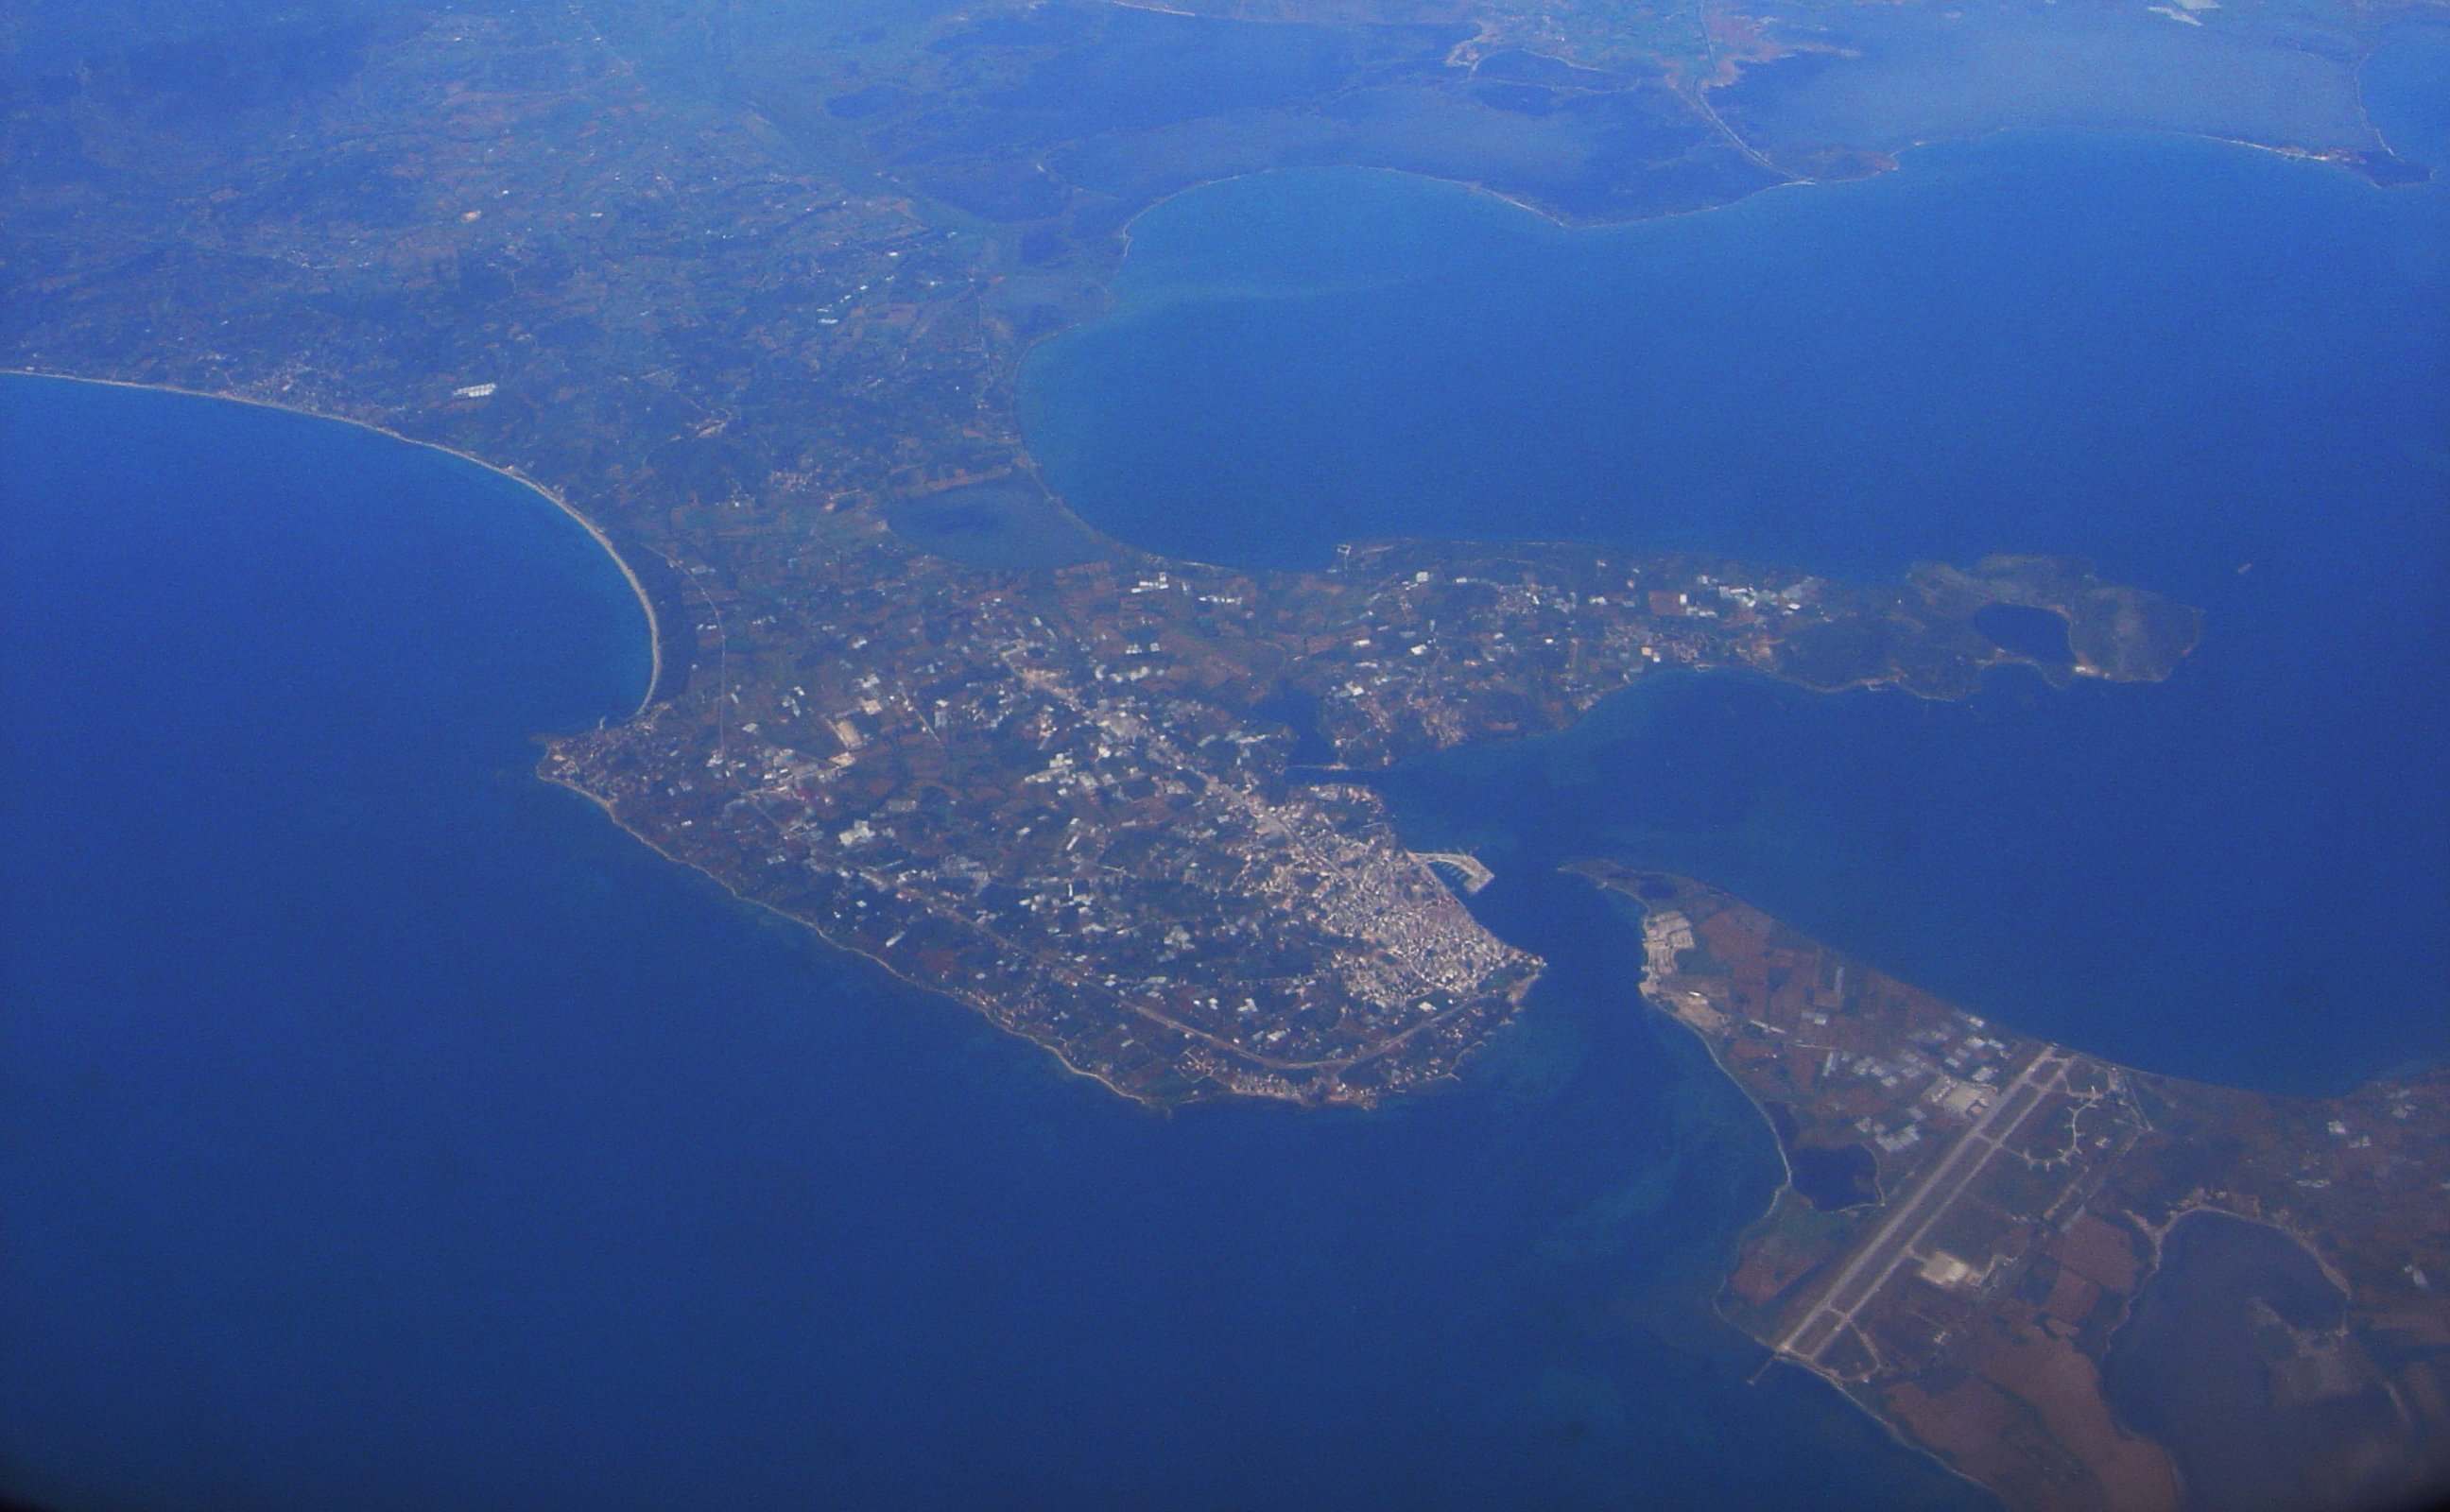 https://upload.wikimedia.org/wikipedia/commons/7/78/Preveza_Greece_from_above_dsc06080.jpg